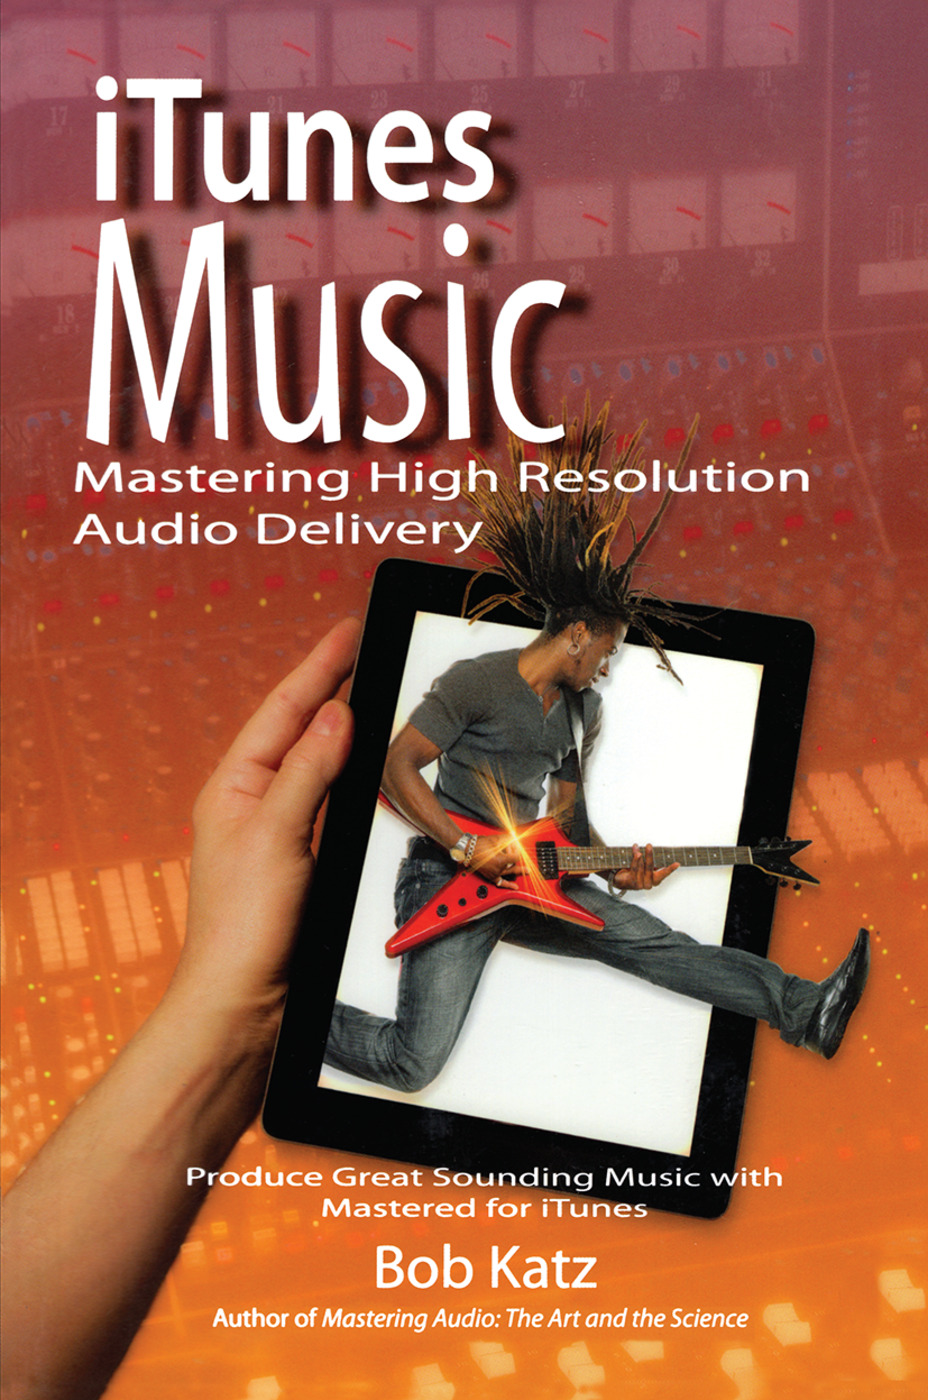 iTunes Music: Mastering High Resolution Audio Delivery: Produce Great Sounding Music with Mastered for iTunes book cover